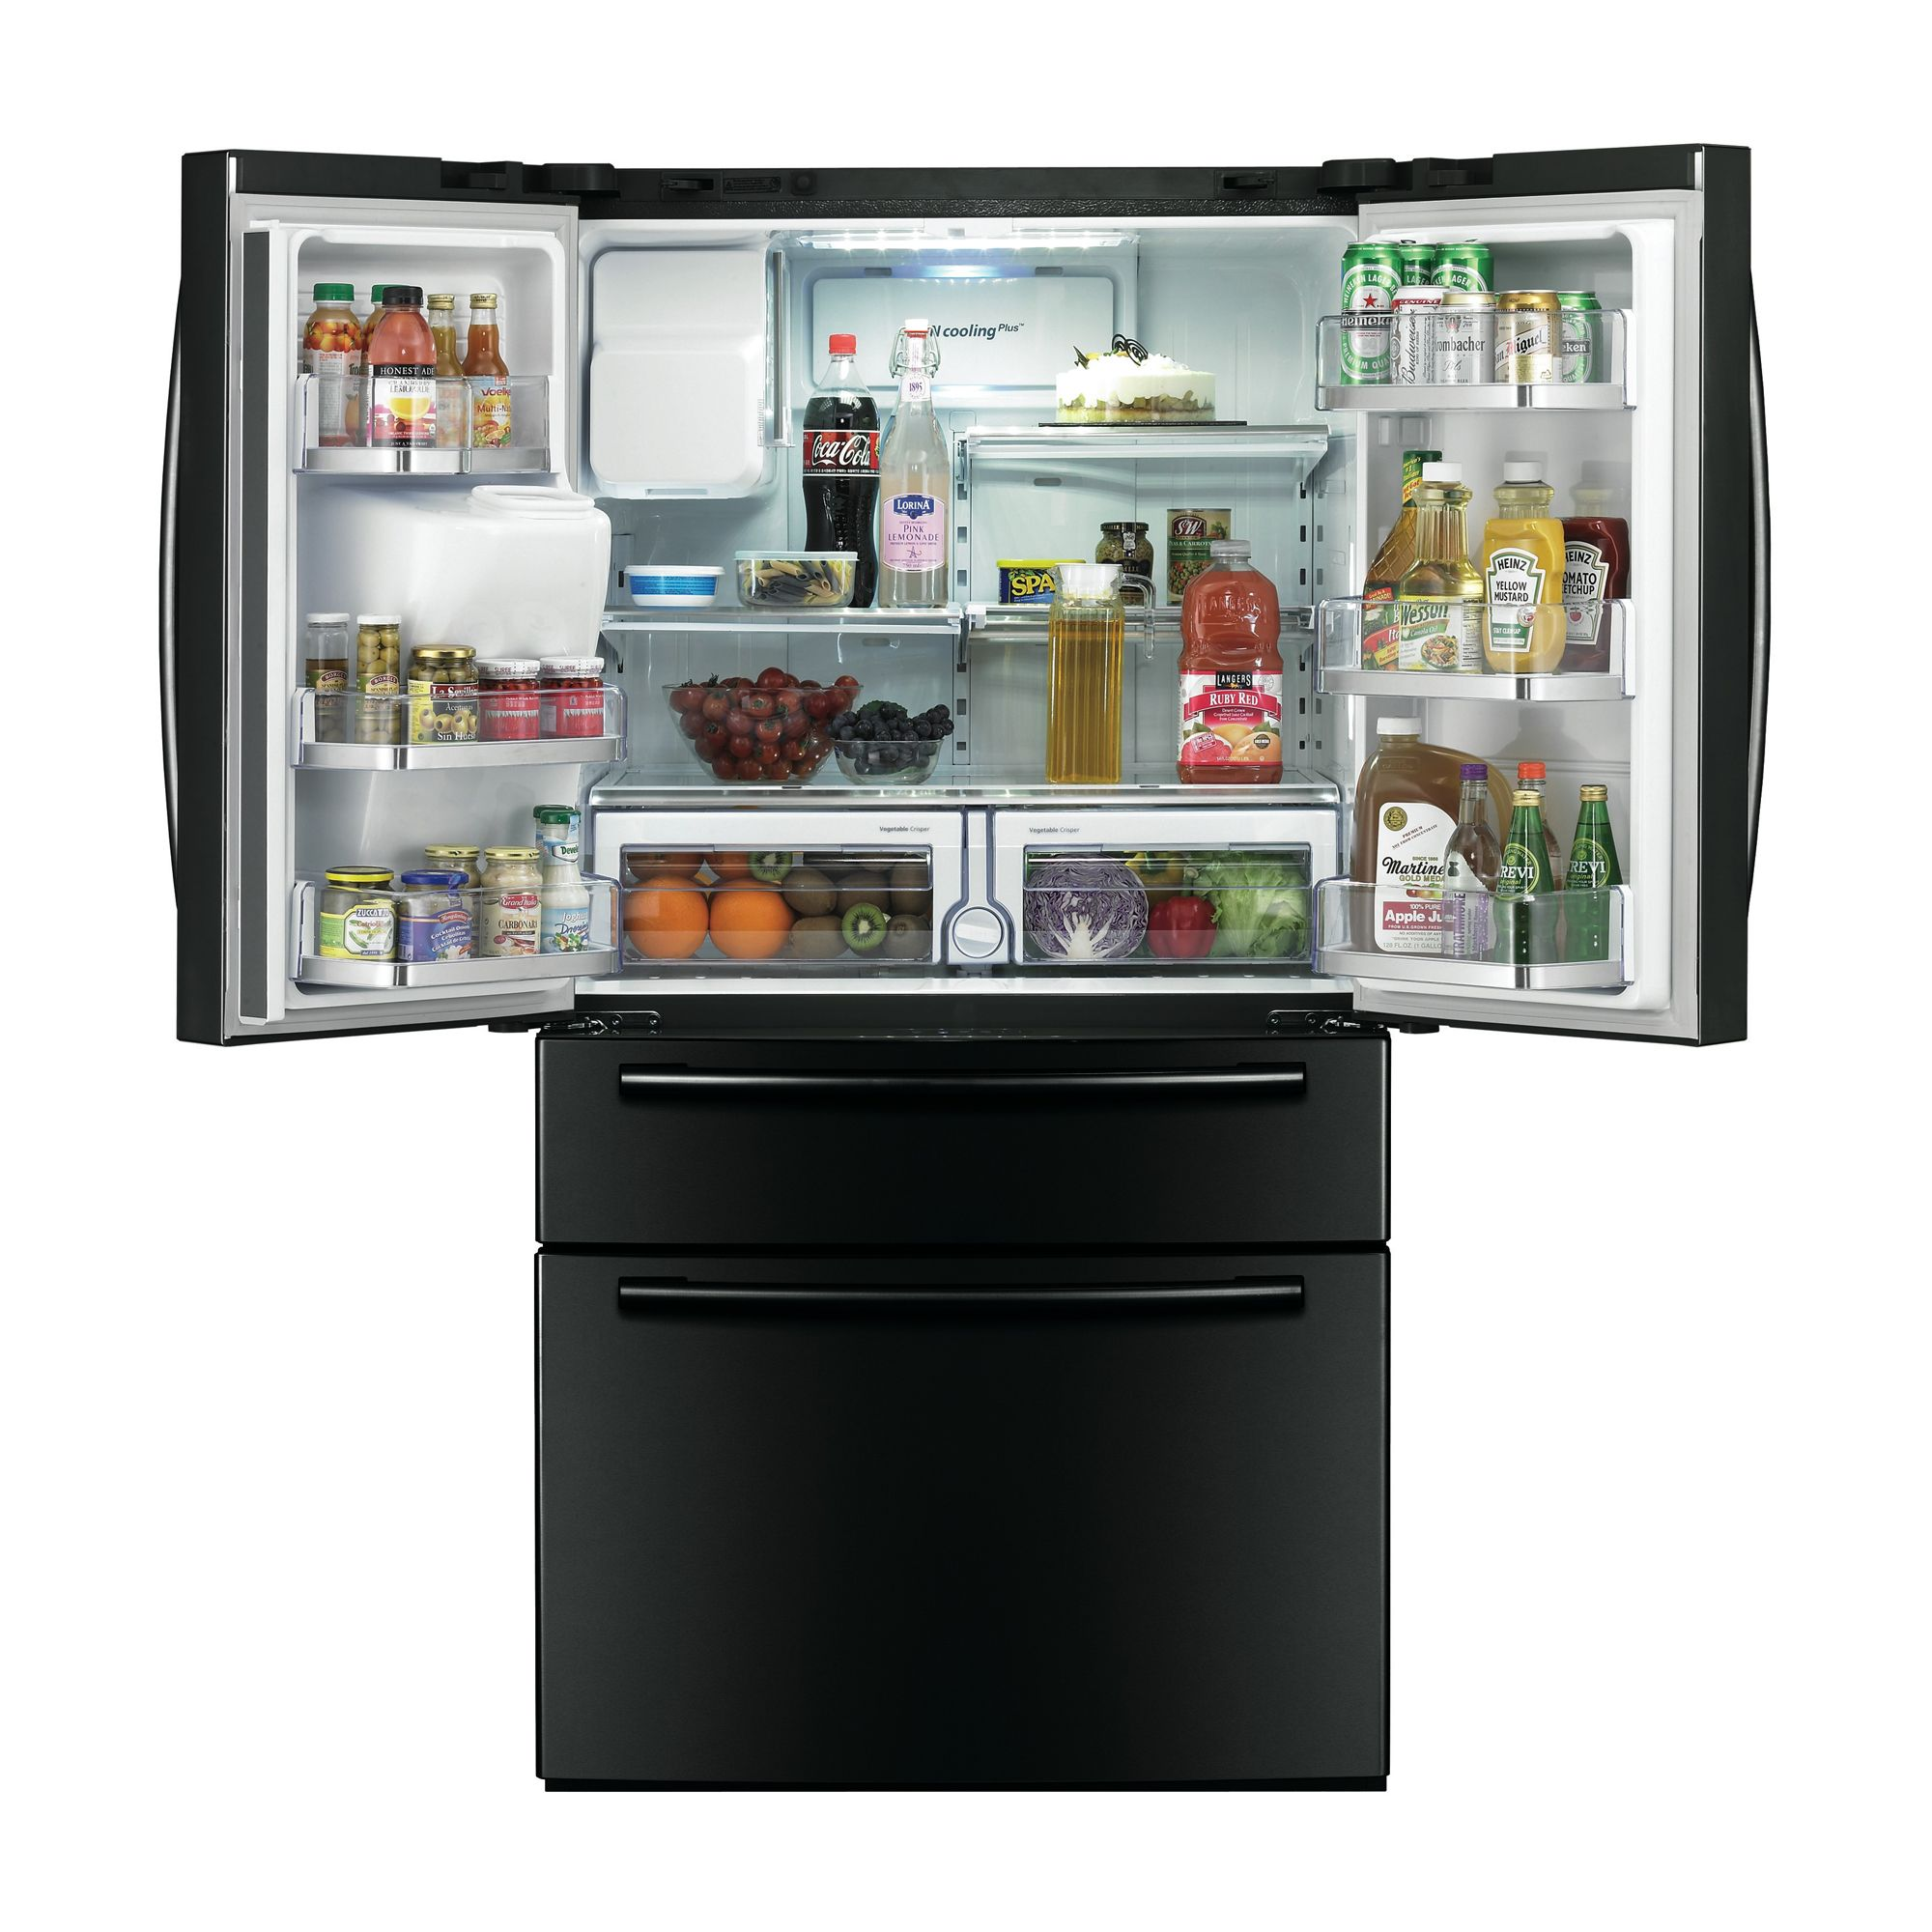 Samsung 28 cu. ft. French-Door Refrigerator w/ Counter-Height Drawer - Black